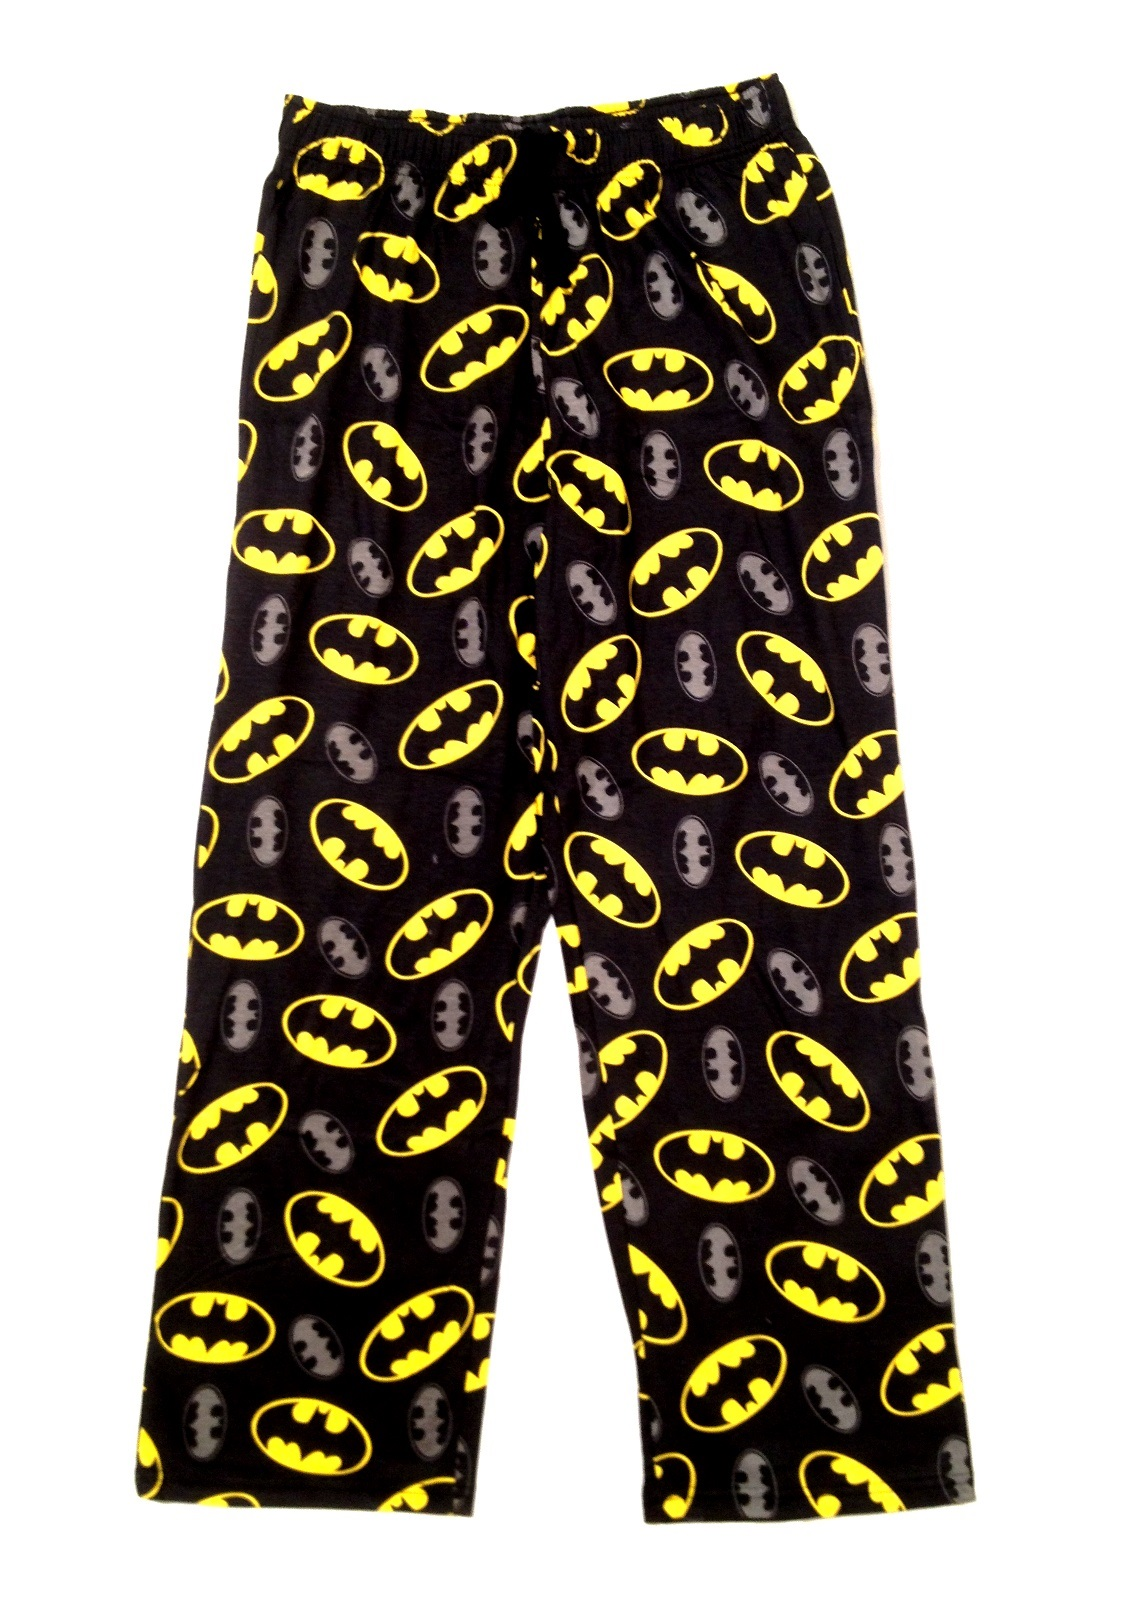 Find high quality printed Cartoons Men's Pajamas at CafePress. Find great designs on super comfy t-shirts and pick out a pair of soft cotton patterned bottoms to go with.?Free Returns?% Satisfaction Guarantee?Fast Shipping.